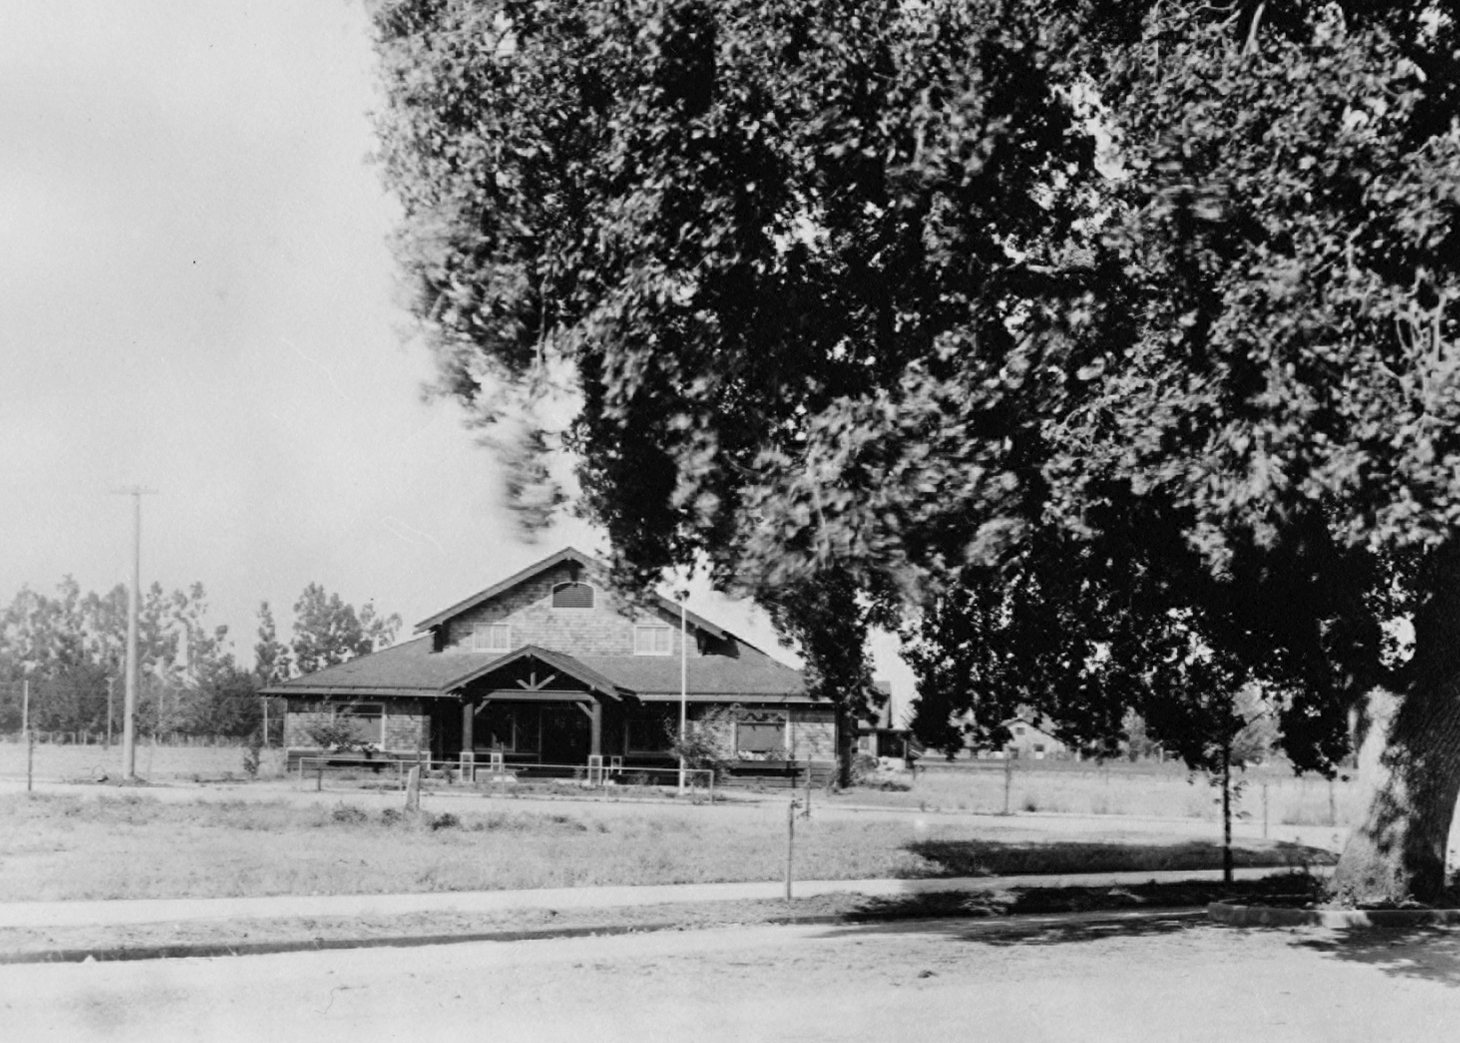 1911ClubhouseOakTree350